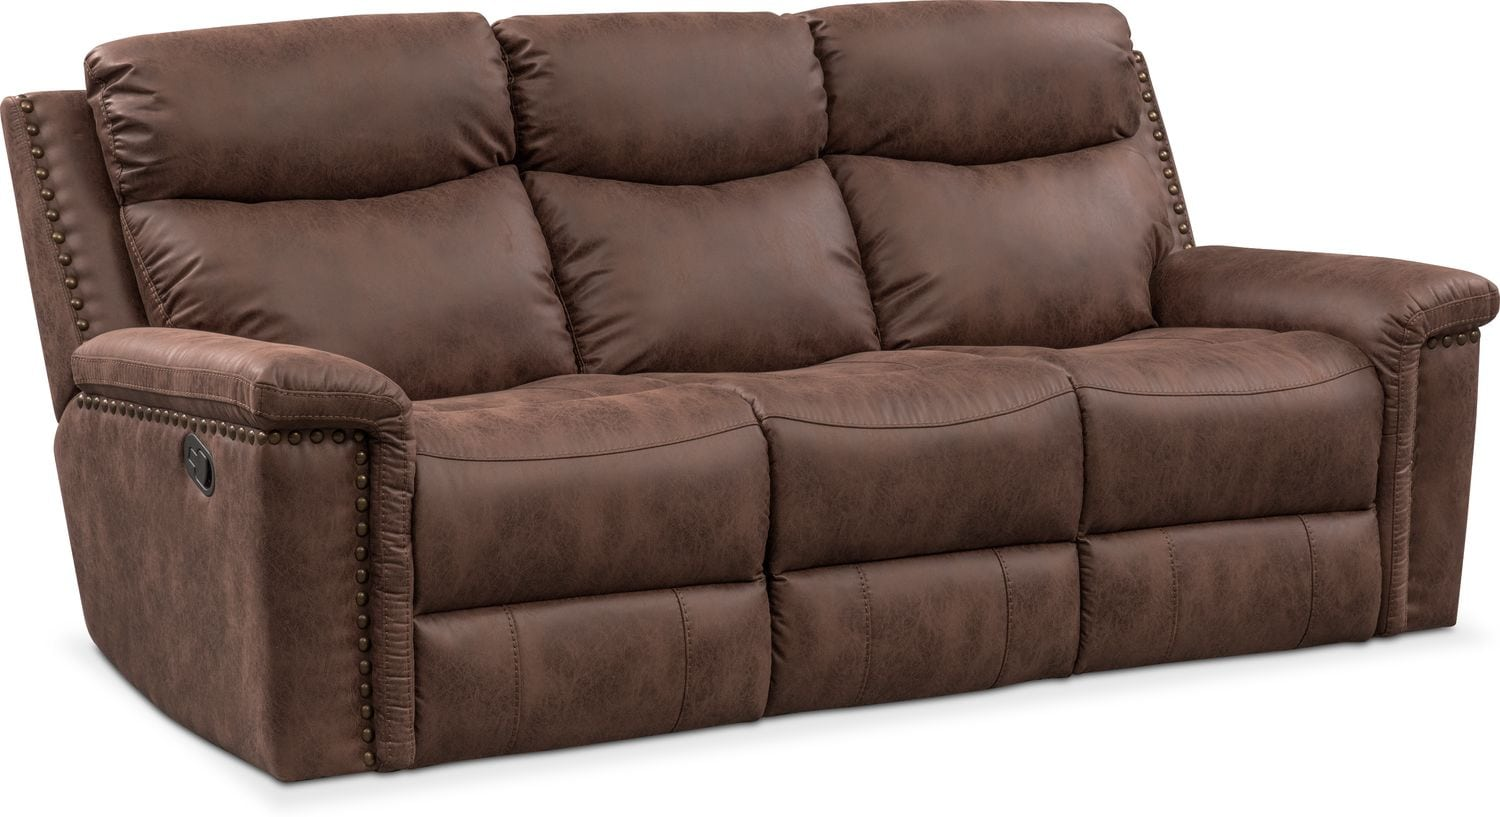 Sofa With Recliner Montana Manual Reclining Sofa Reclining Loveseat And Recliner Set